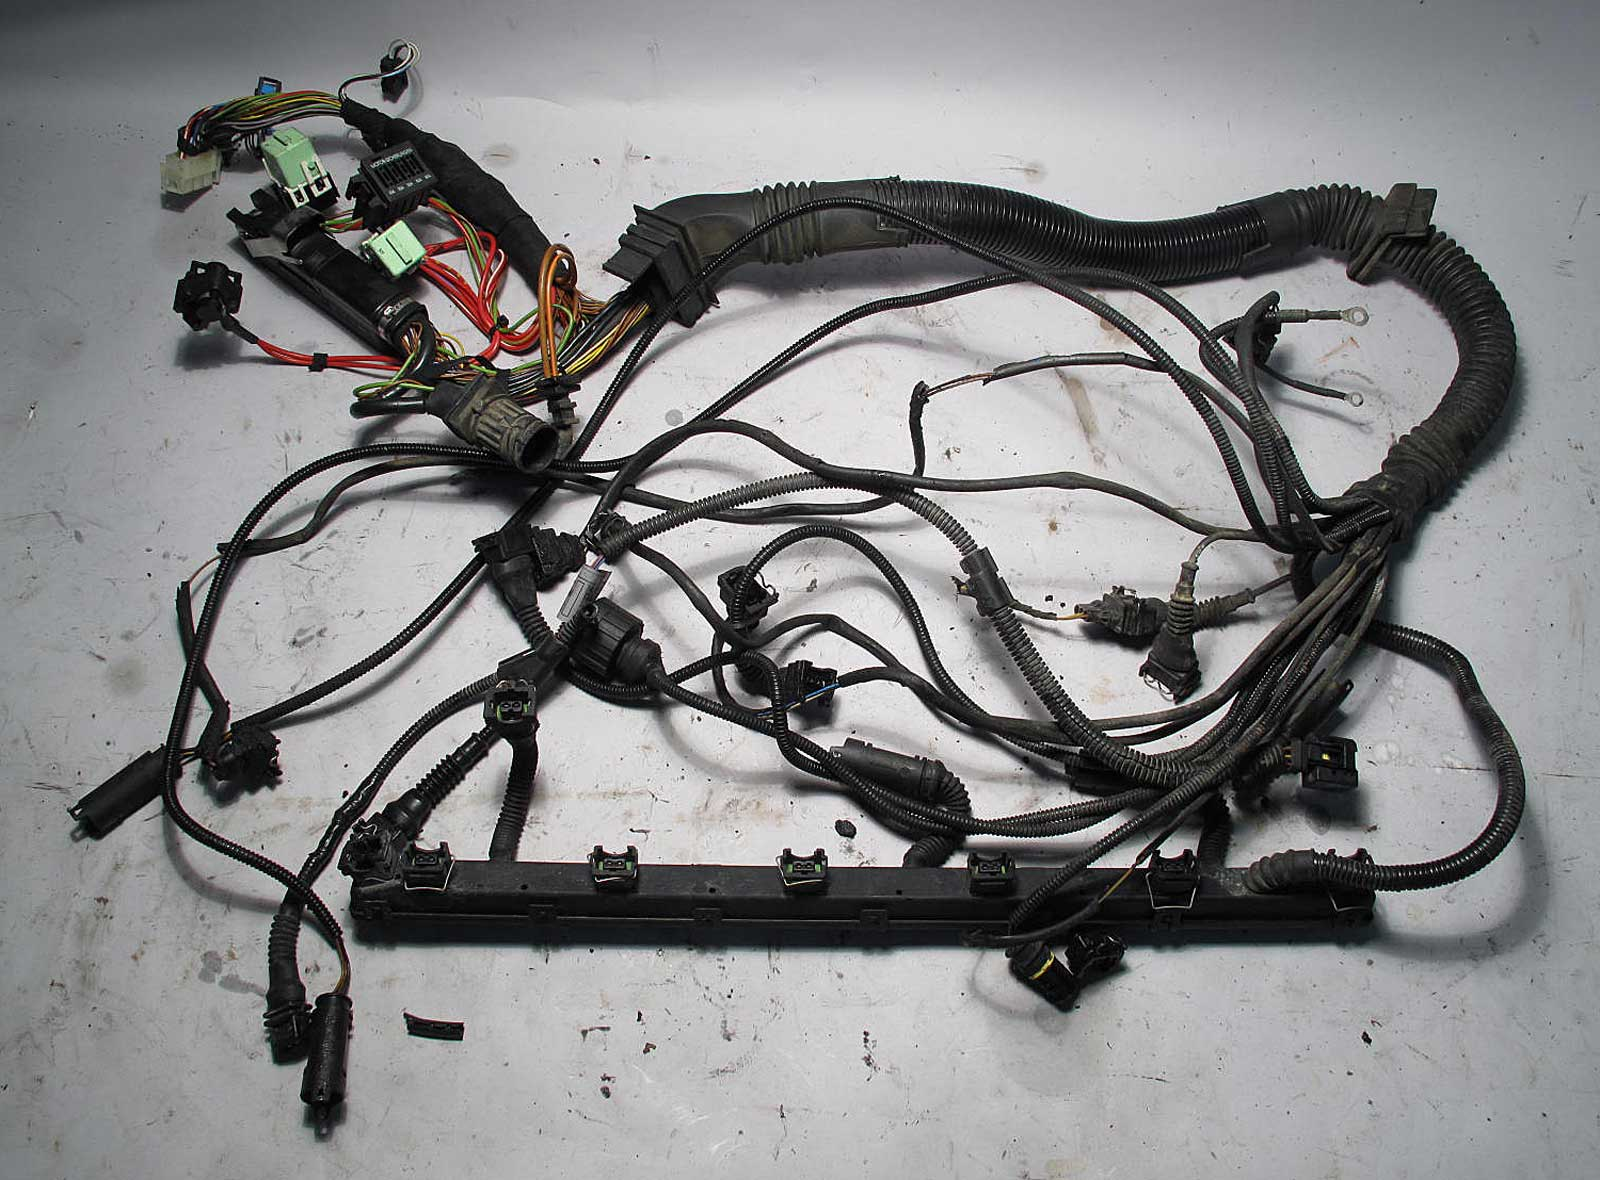 inv_004585 bmw e39 1998 528i 5 spd manual engine wiring harness complete m52 new engine wiring harness for 1985 vw vanagon at nearapp.co